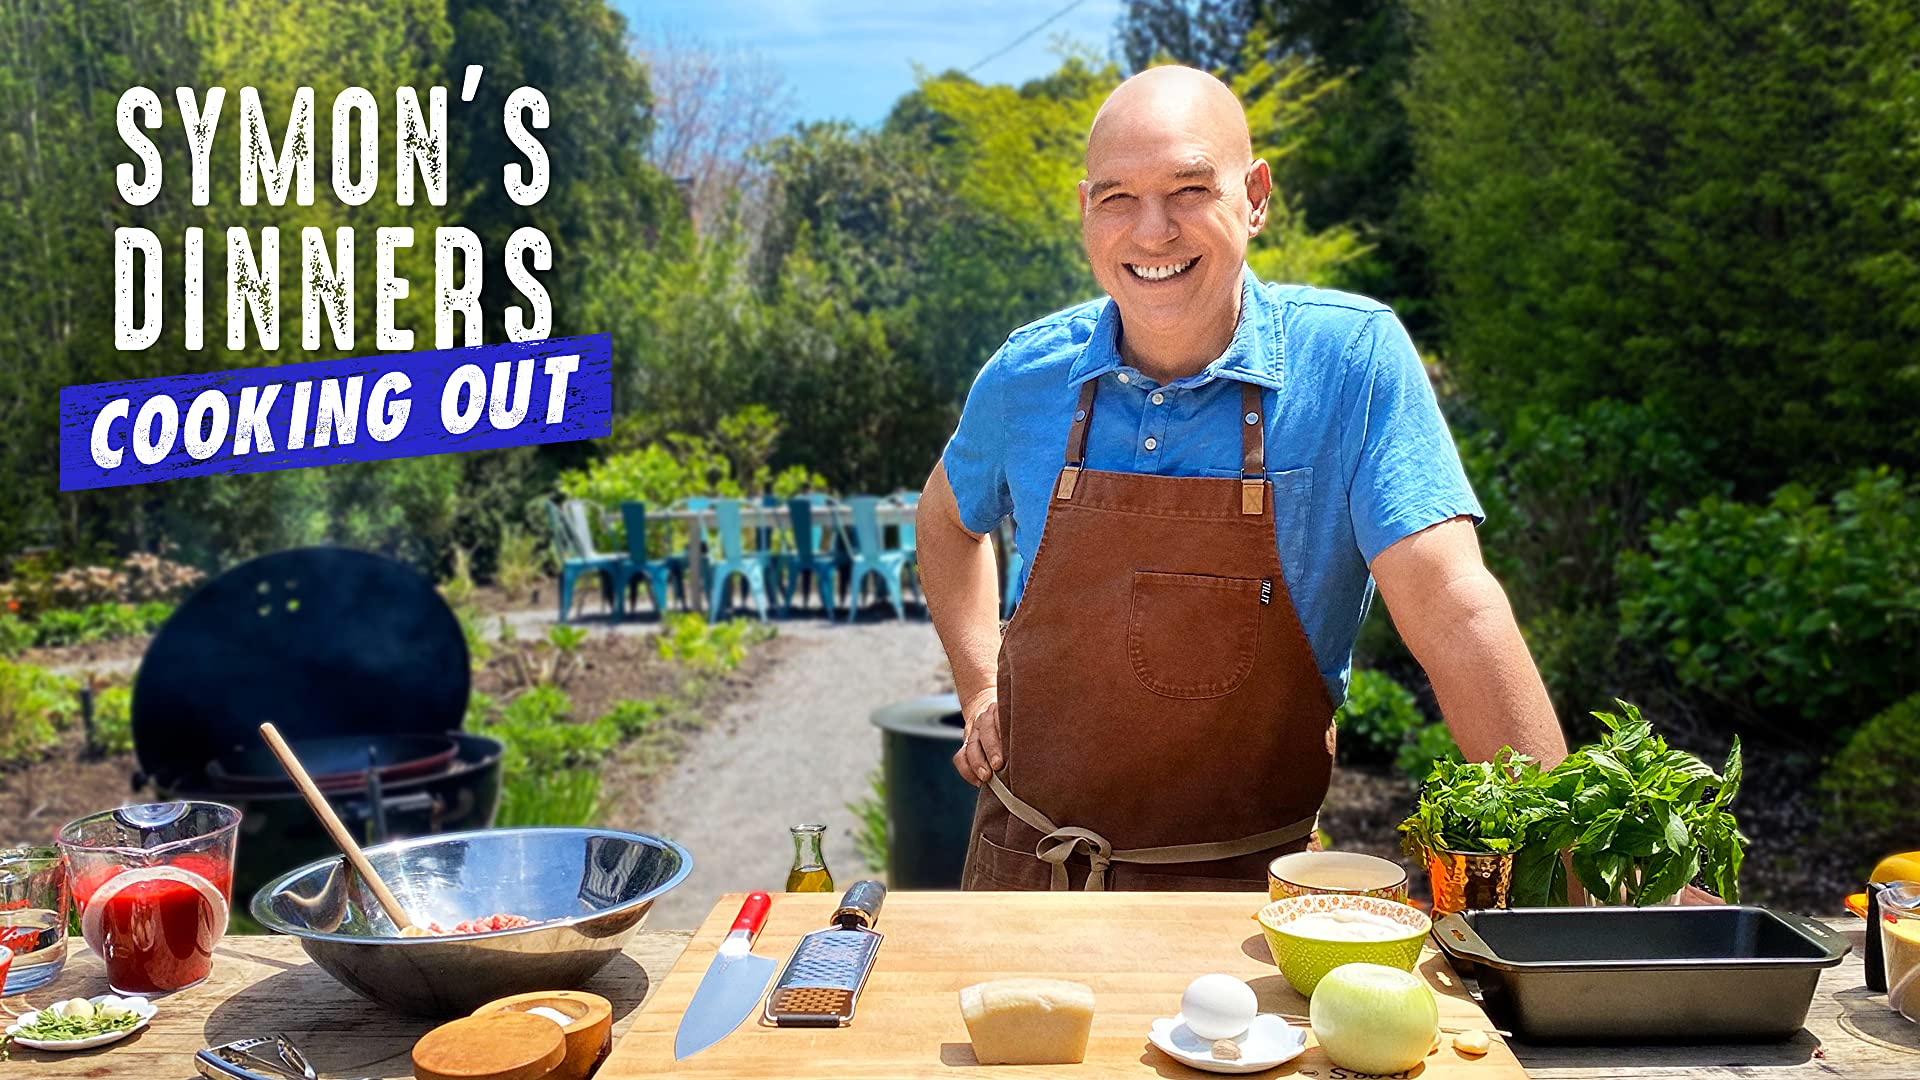 Symon's Dinners Cooking Out - Season 1